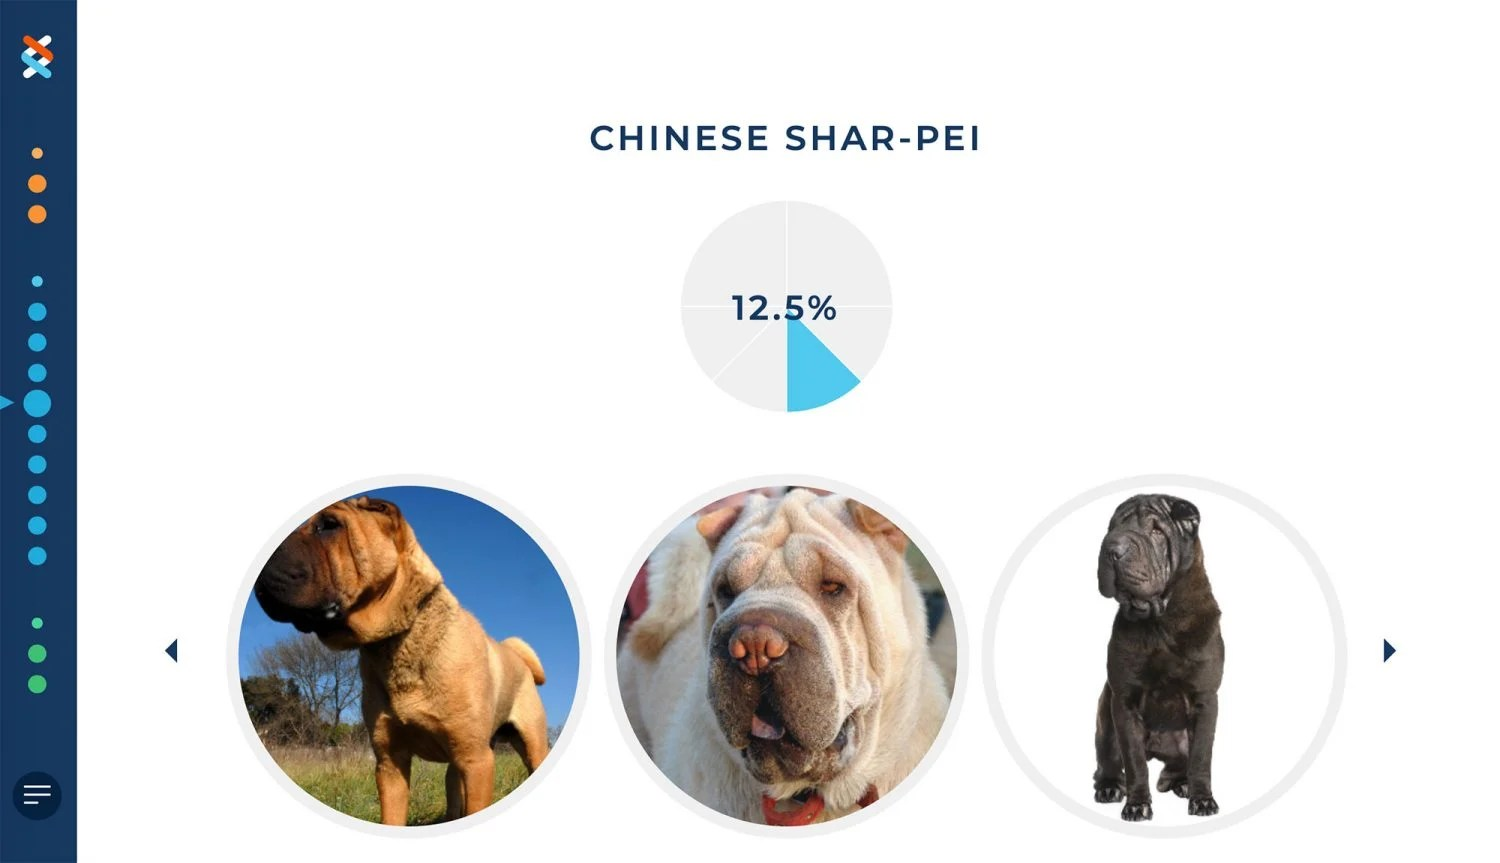 wisdom panel, dna test, chewy, chewy.com, what breed, dog breed, shar pei mix, guess, puppy, dog, Sharpei, Shar Pei, rescue dog, rescue puppy, getting a dog, mom blog, mom blogger, mommy blog, mommy blogger, 2019, family blog, parenting blog, the super mom life, thesupermomlife, parenting blogger, family blogger